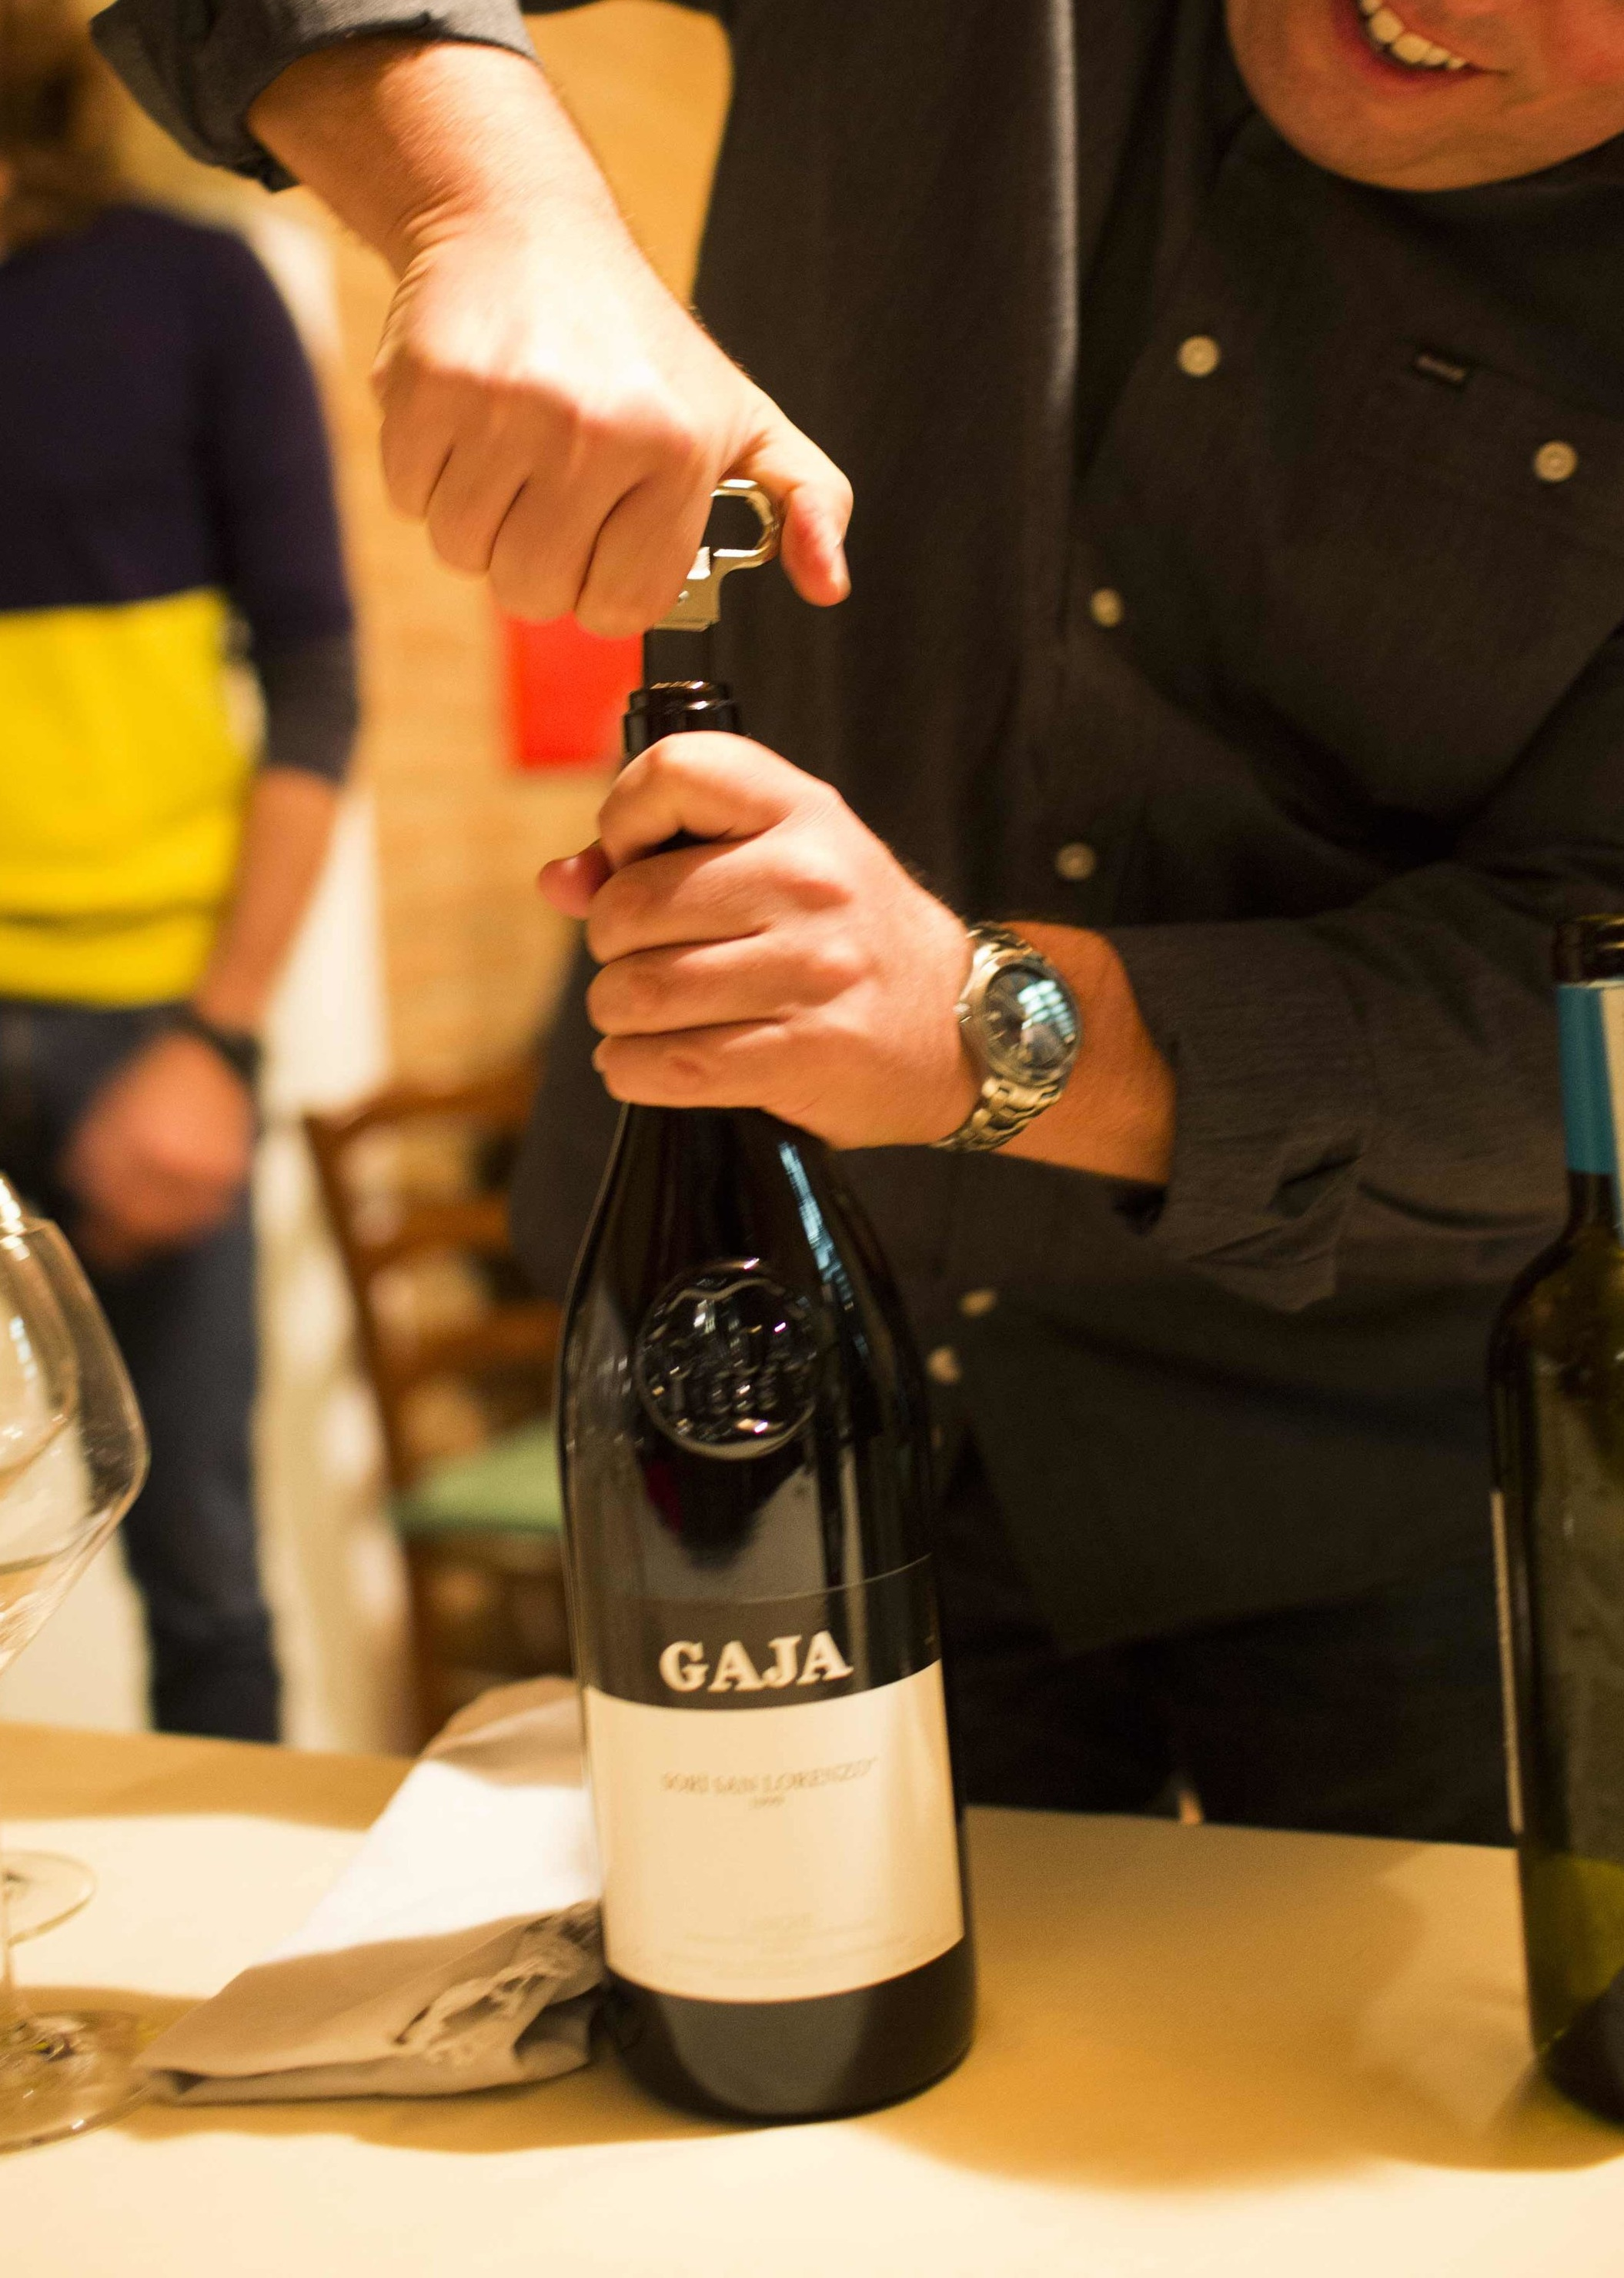 gaja barbaresco wine tasting